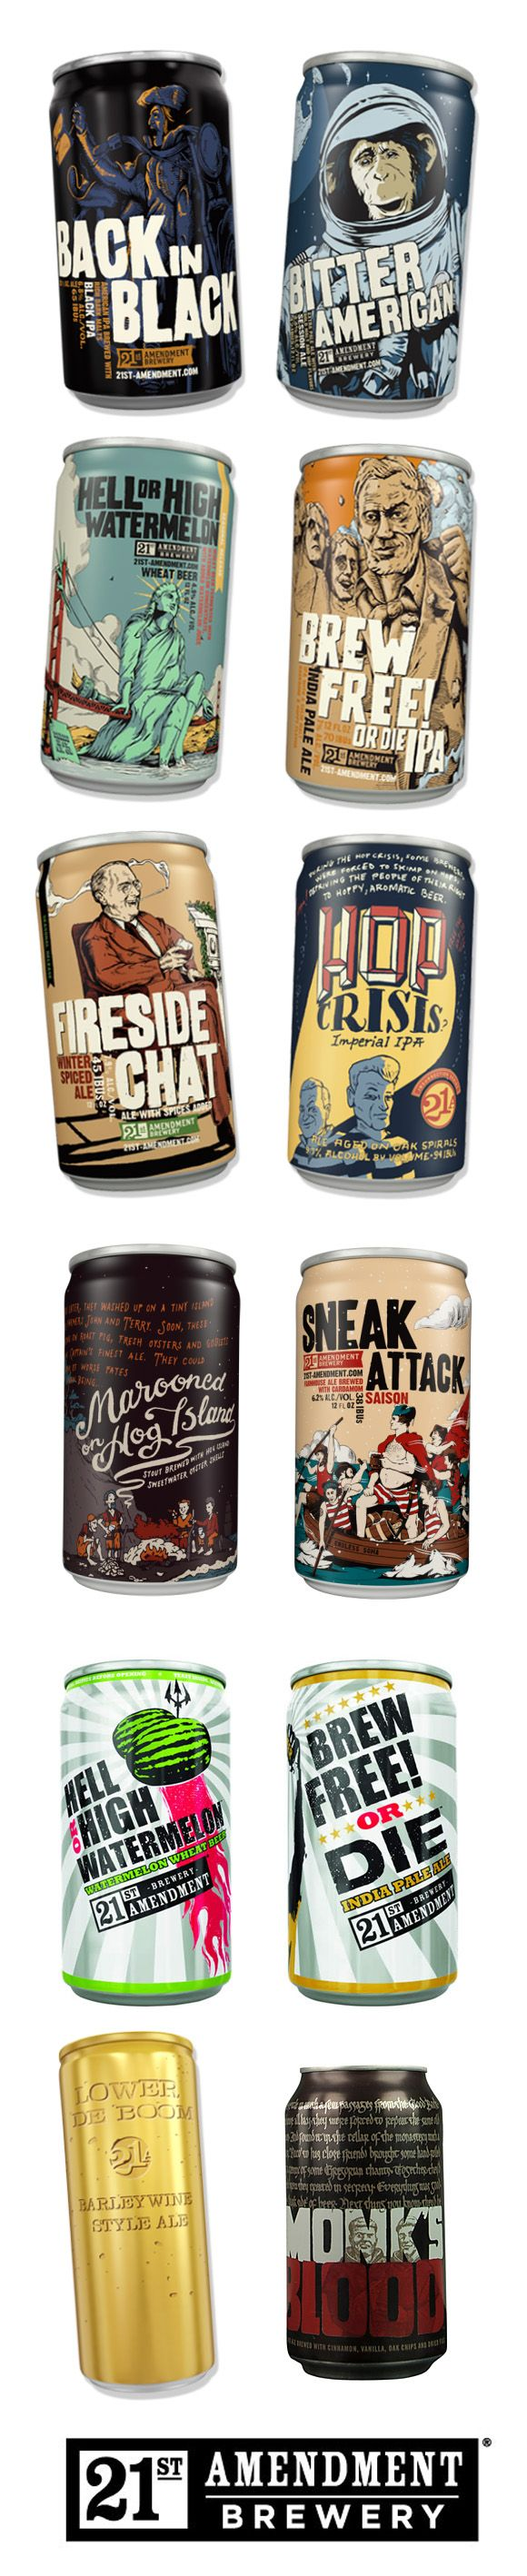 Great collection of San Francisco's 21st Amendment Brewery #beer can #packaging…